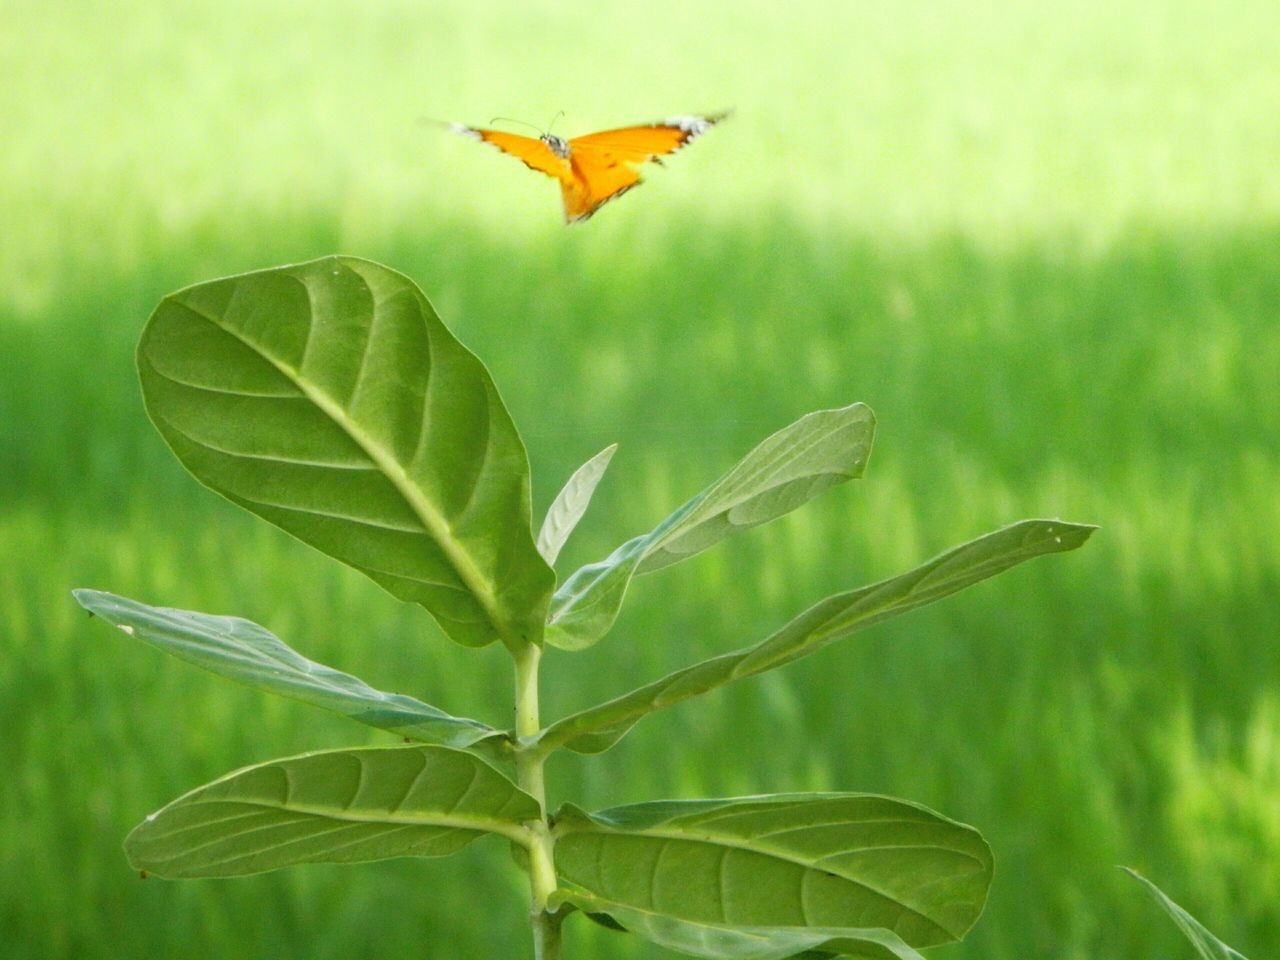 NikonCoolpixL120 Close Up Hopes And Dreams Butterfly Fly Away..... Butterfly ❤ Macro Beauty Conceptual Butterfly Macro The Rise Of Nature Creative Photography Butterfly Collection Close To Nature Negetive Space Isolation Imperfection Macro_collection Green Background Soft Pastel  Pastel Power Pastel Colors 43 Golden Moments Minimalism Photography Fly Away Feel The Journey Jessore Bangladesh